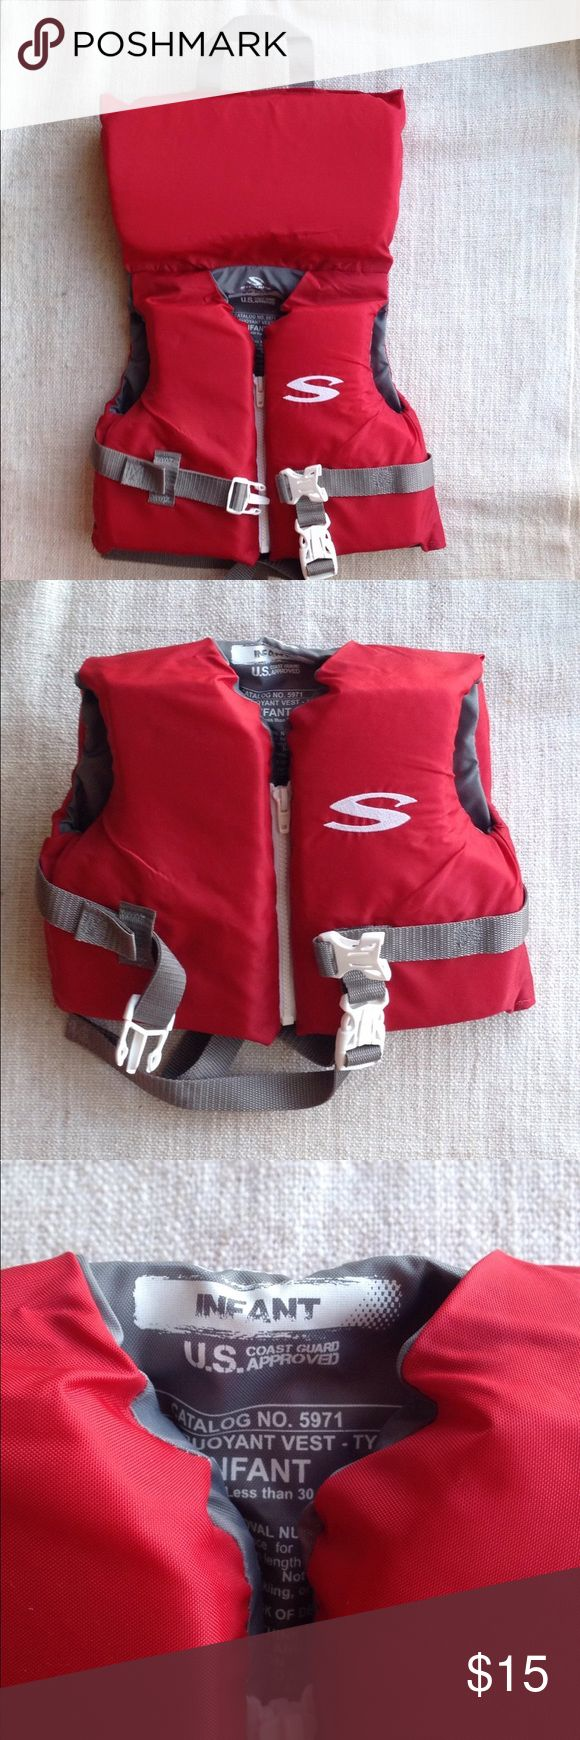 Stearns infant classic series vest Used only once!  Stearns Infant Classic Series Vest helps protect little swimmers at the beach or on the boat. The US Coast Guard-approved design is specially-fitted for infants under 30 lbs. A rescue handle allows adults to easily move the infant from the water or the boat, and it has one adjustable chest belt, a zipper and an adjustable leg strap for a tight and secure fit. Durable nylon construction and PE flotation foam, along with webbed straps, will…